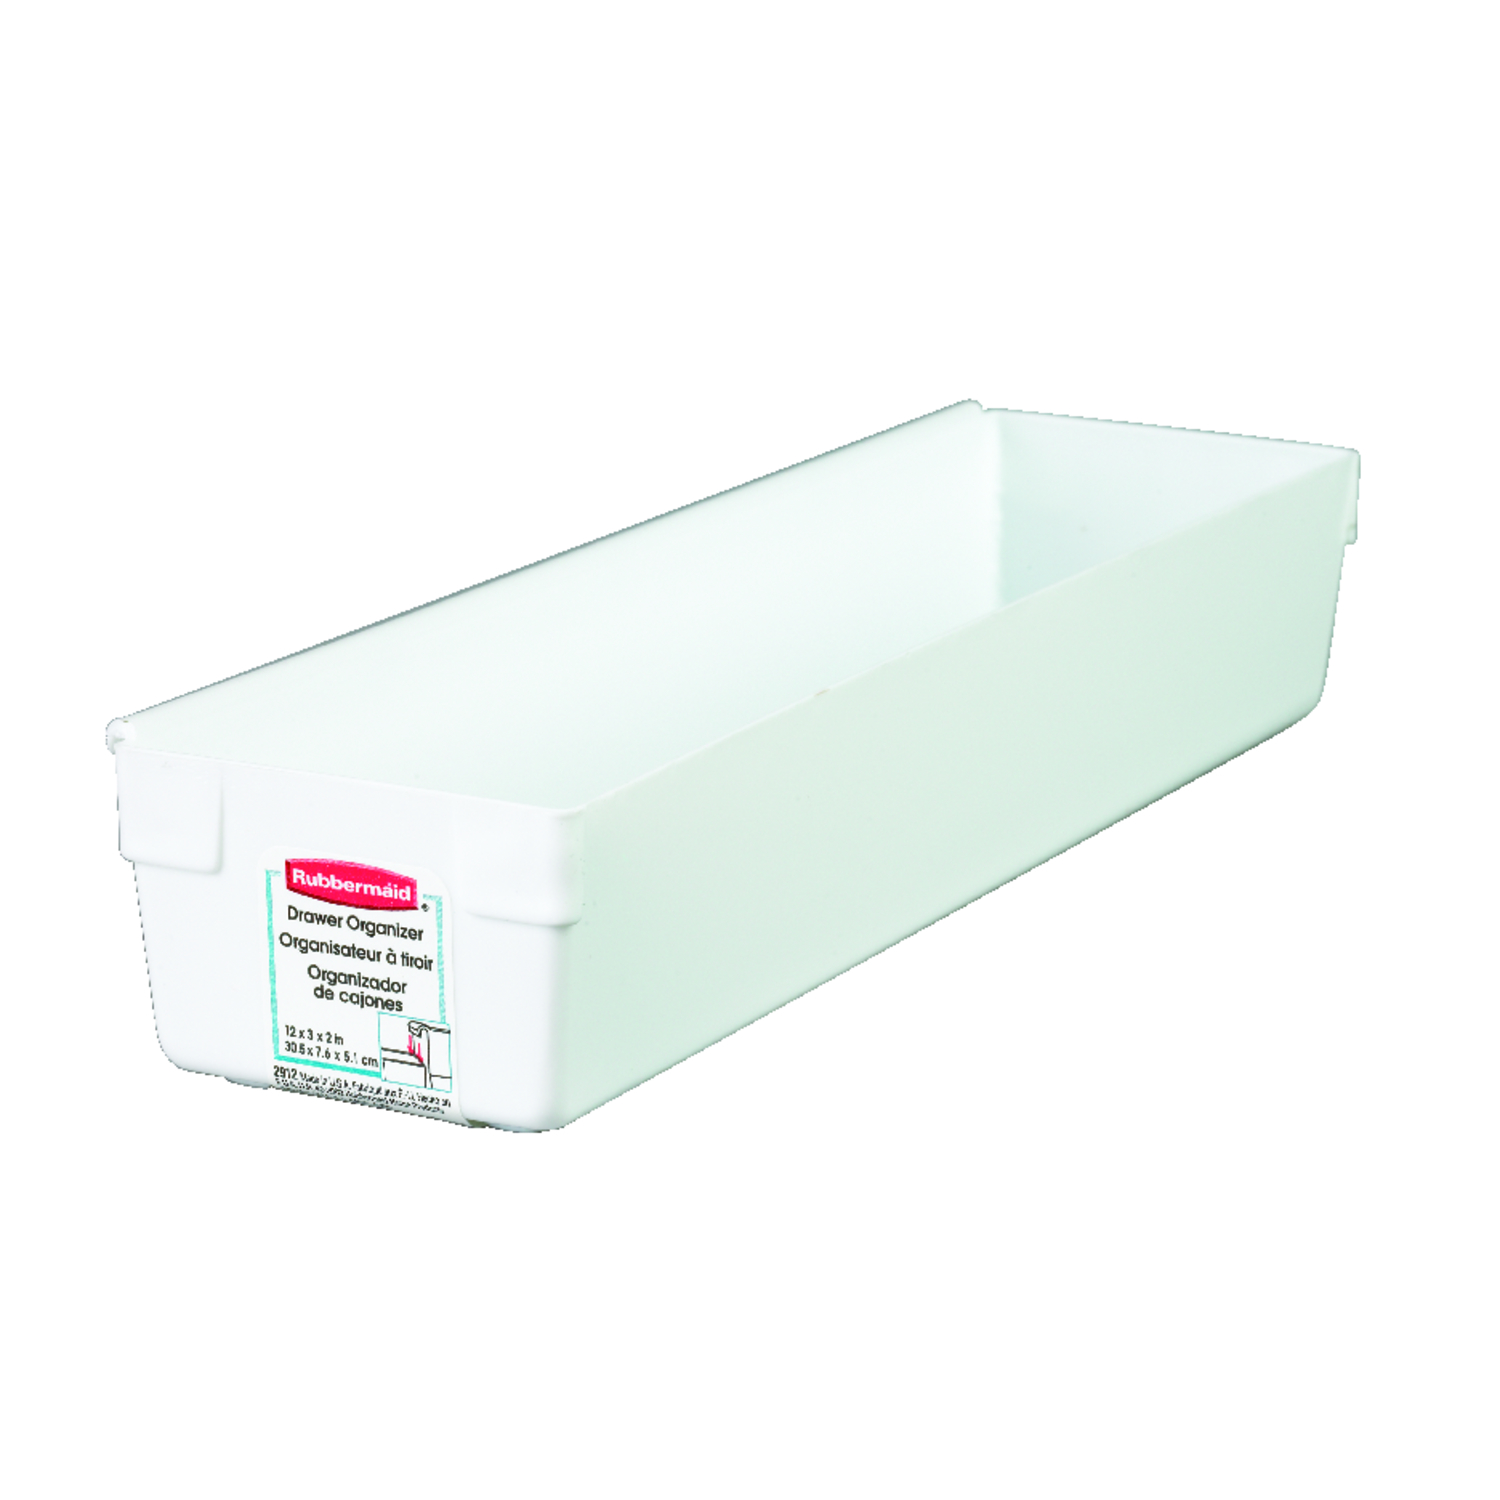 Rubbermaid  12 in. L x 3 in. W x 2 in. H Plastic  White  Drawer Organizer